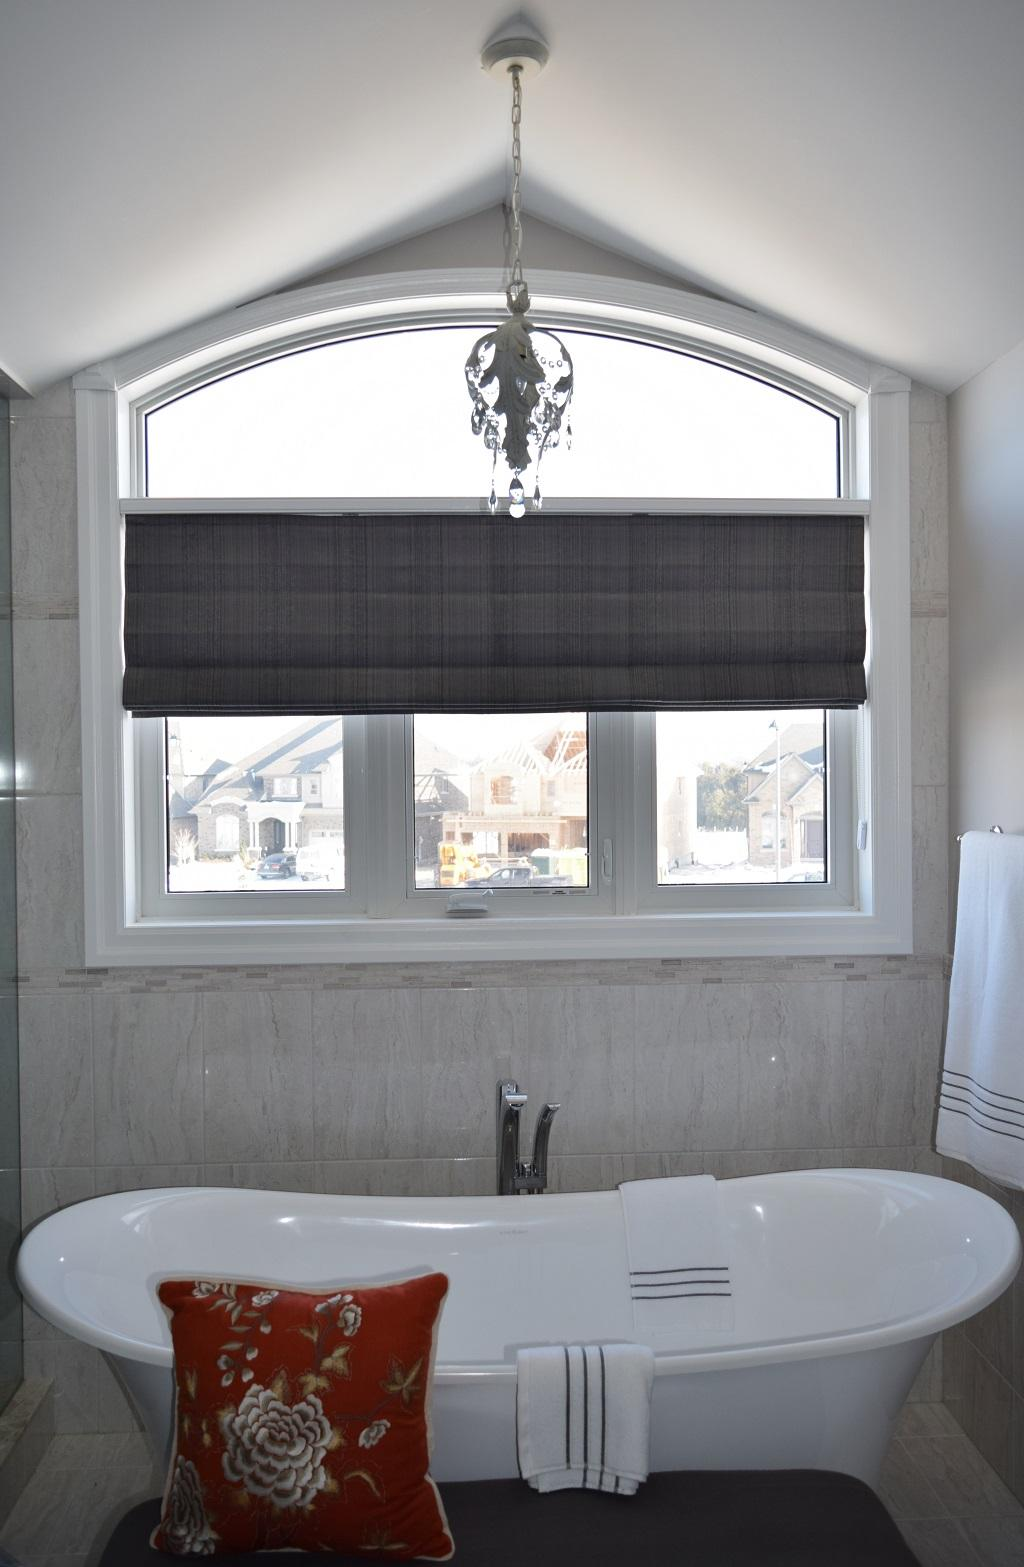 Budget Blinds à Waterloo: Elegant and contemporary, a knife-pleat roman shade was just what this Waterloo master ensuite called for.